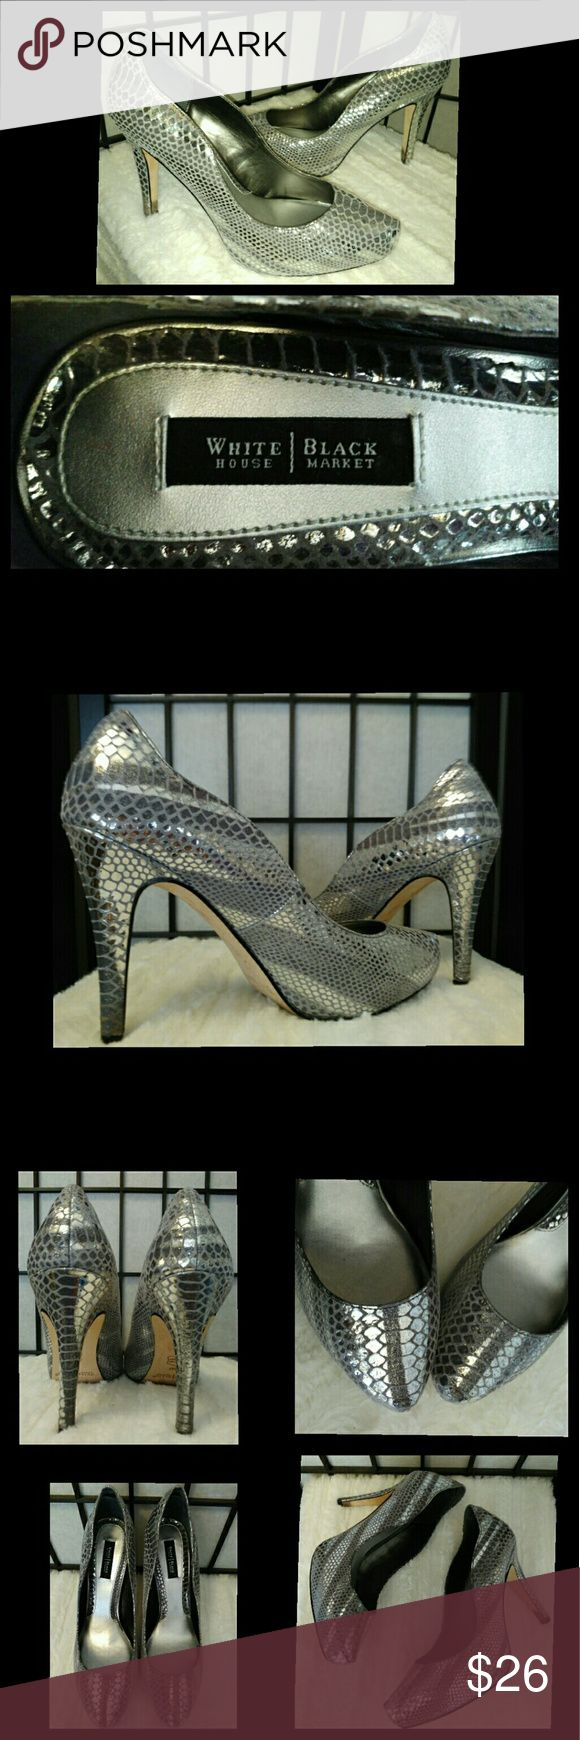 WHBM Metallic Silver Faux Snakeskin Heels Gorgeous and sexy heels! Fantastic condition! You can slightly see where removable insoles were used and taken out. Leather outsole. Bottoms show use from wear. Enjoy! :) Plz ask any Q's ~ I love to have happy buyers! :) #Scalloped #Pumps #Shoes #Exoticdancer #Stripper #Eveningwear White House Black Market Shoes Heels